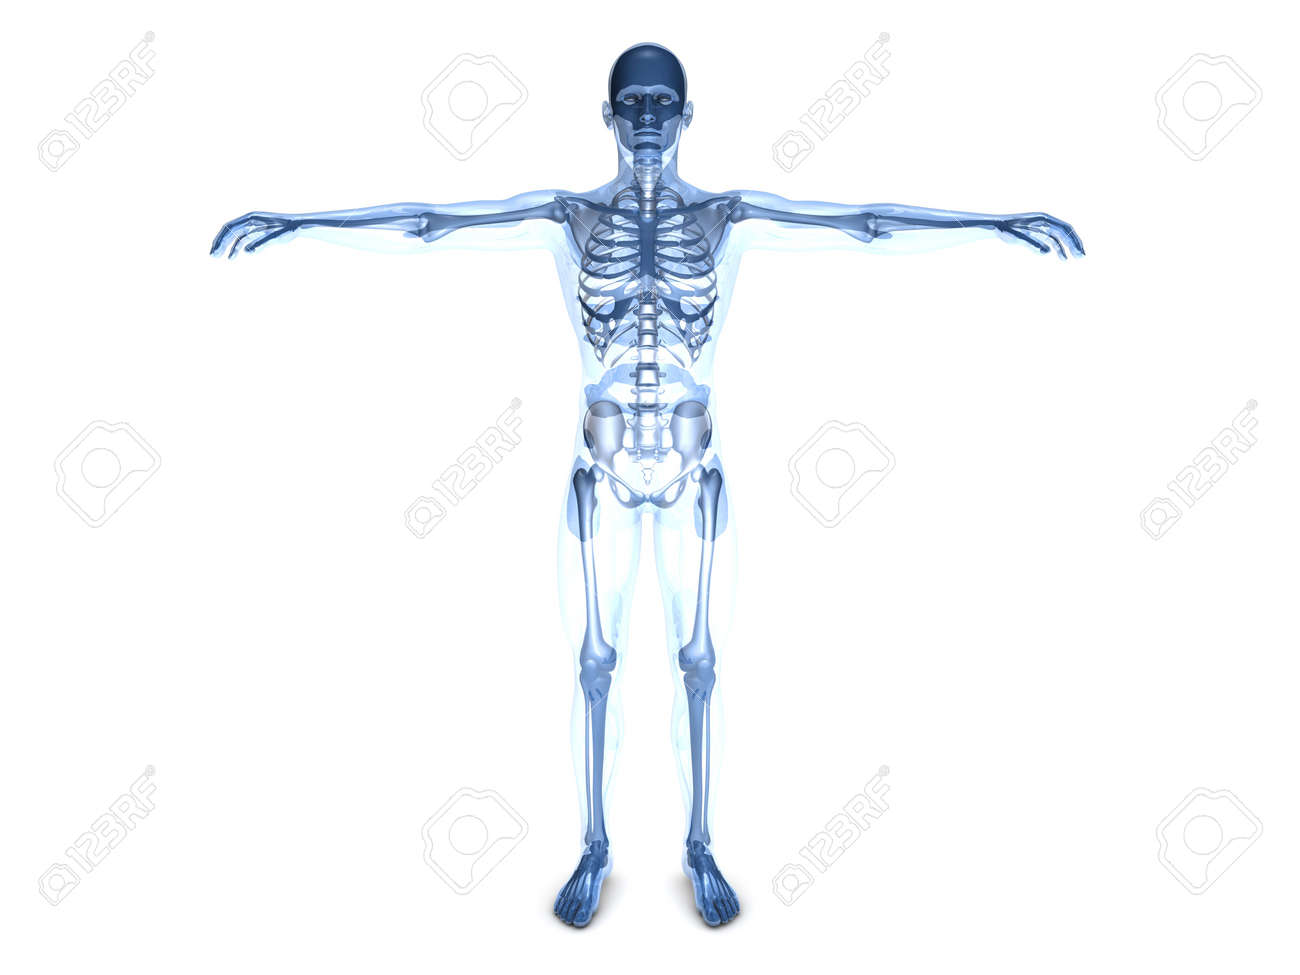 A Medical Visualization Of Human Anatomy 3D Rendered Illustration Stock